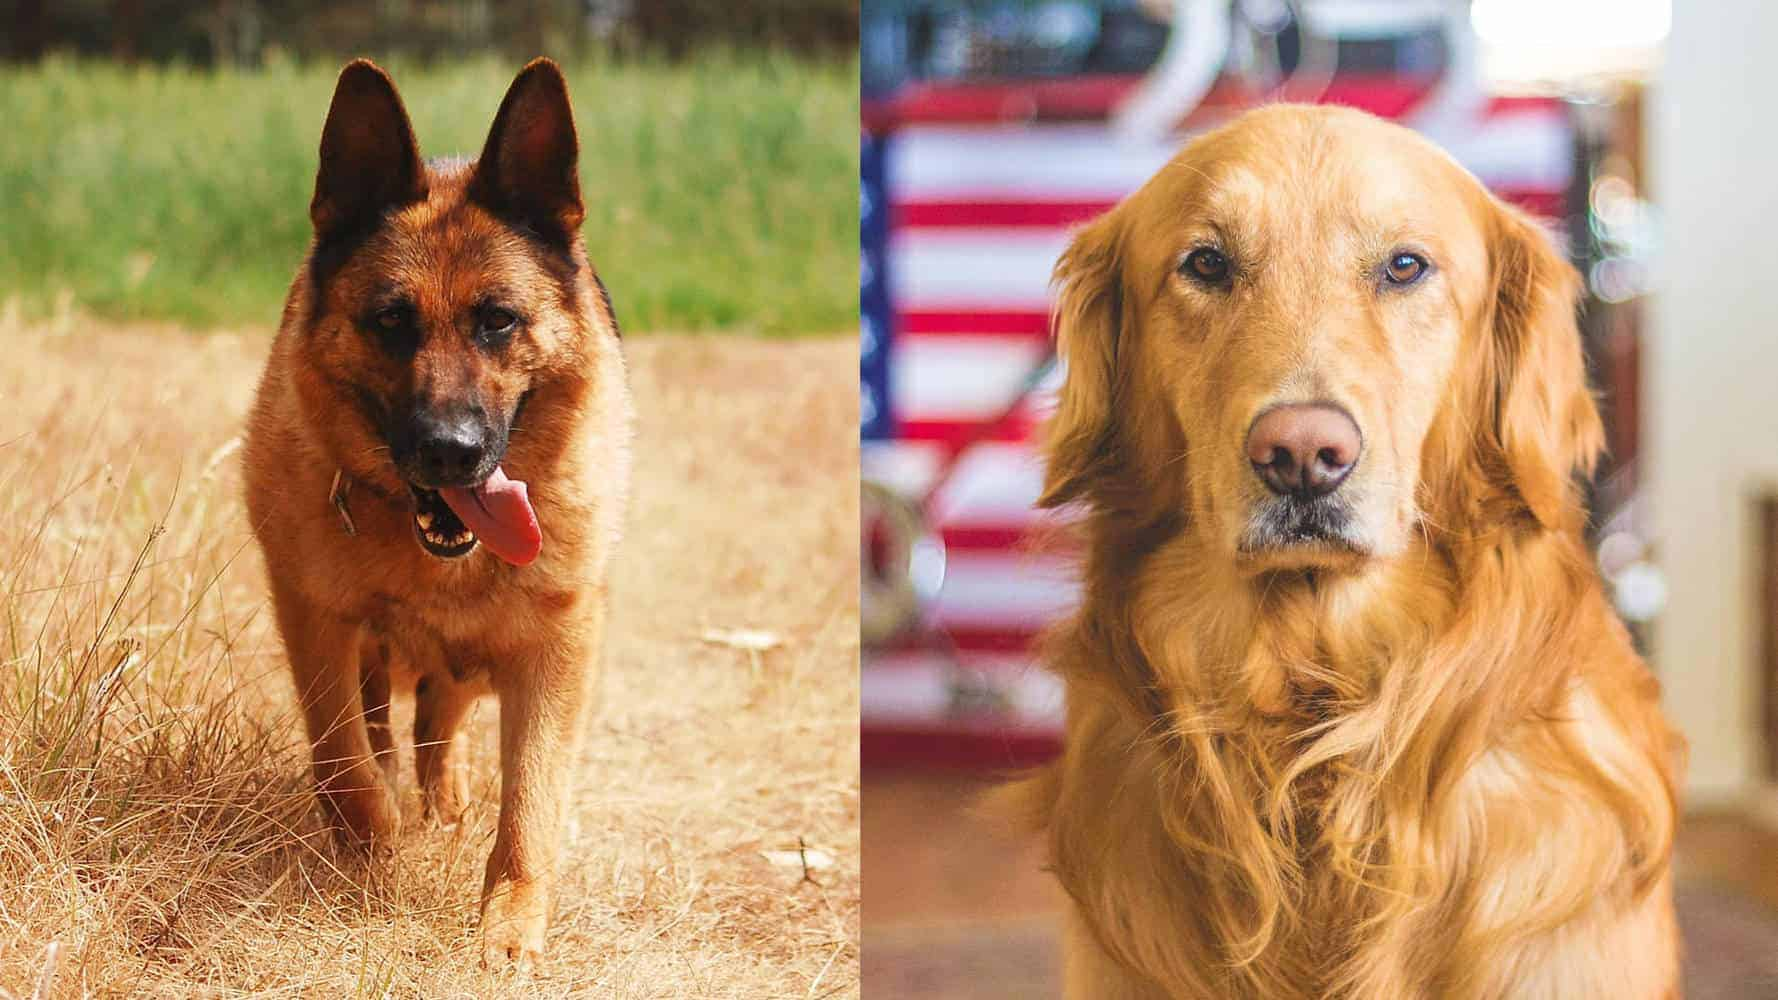 Golden Retriever Vs German Shepherd: What's The Difference?